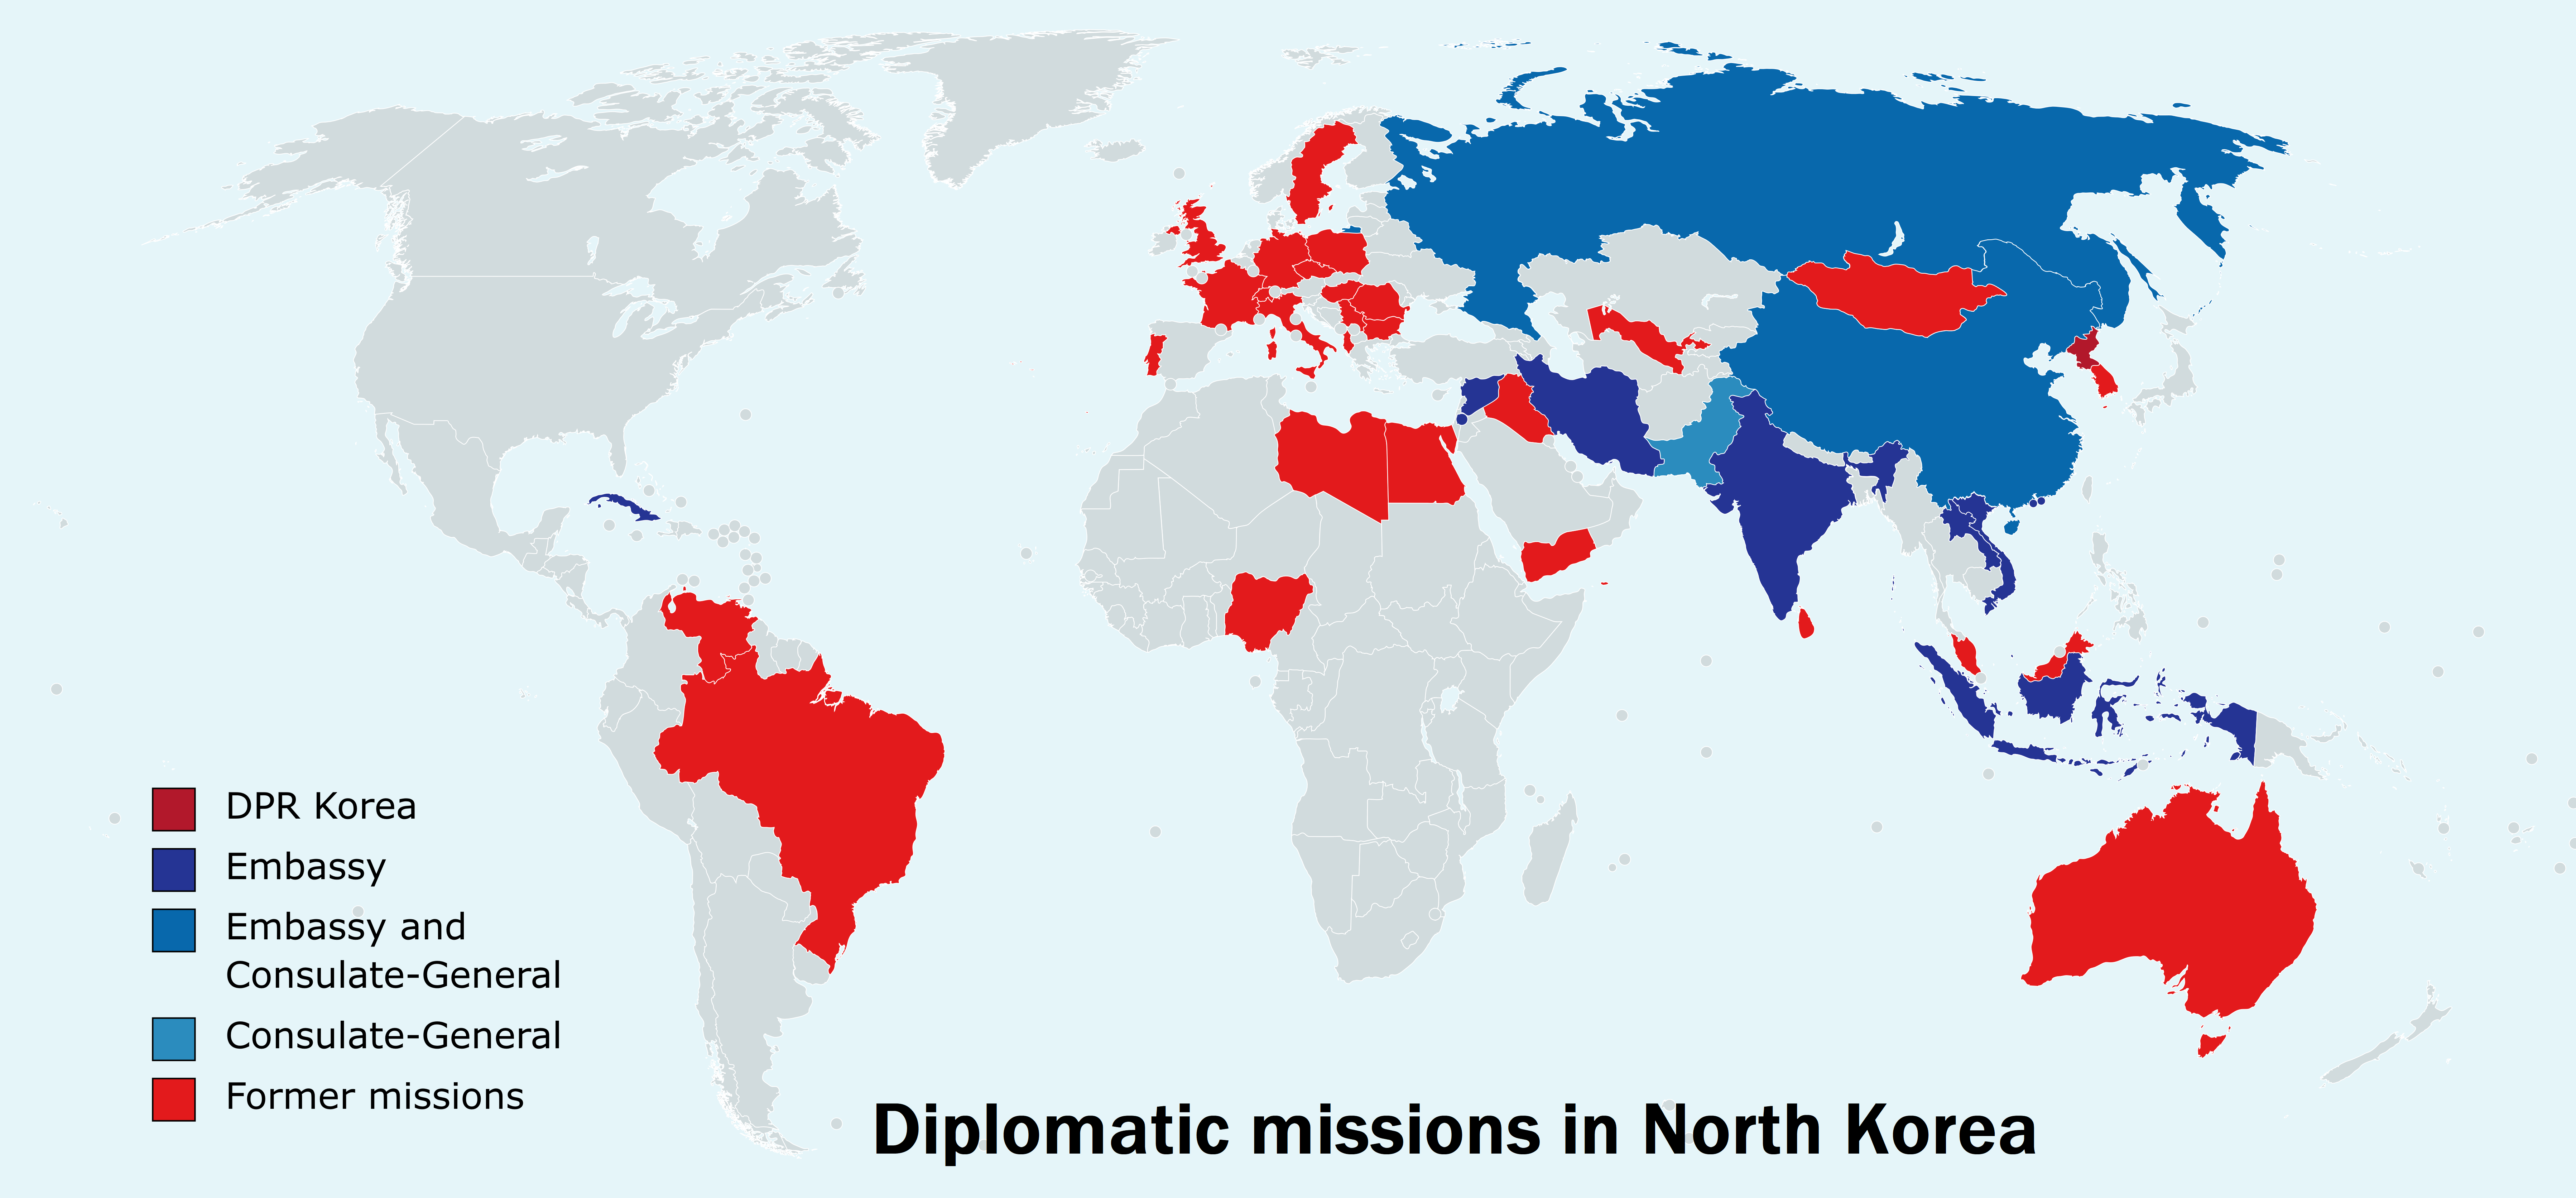 Where North Korea Has Embassies & Who Has Embassies in North Korea ...